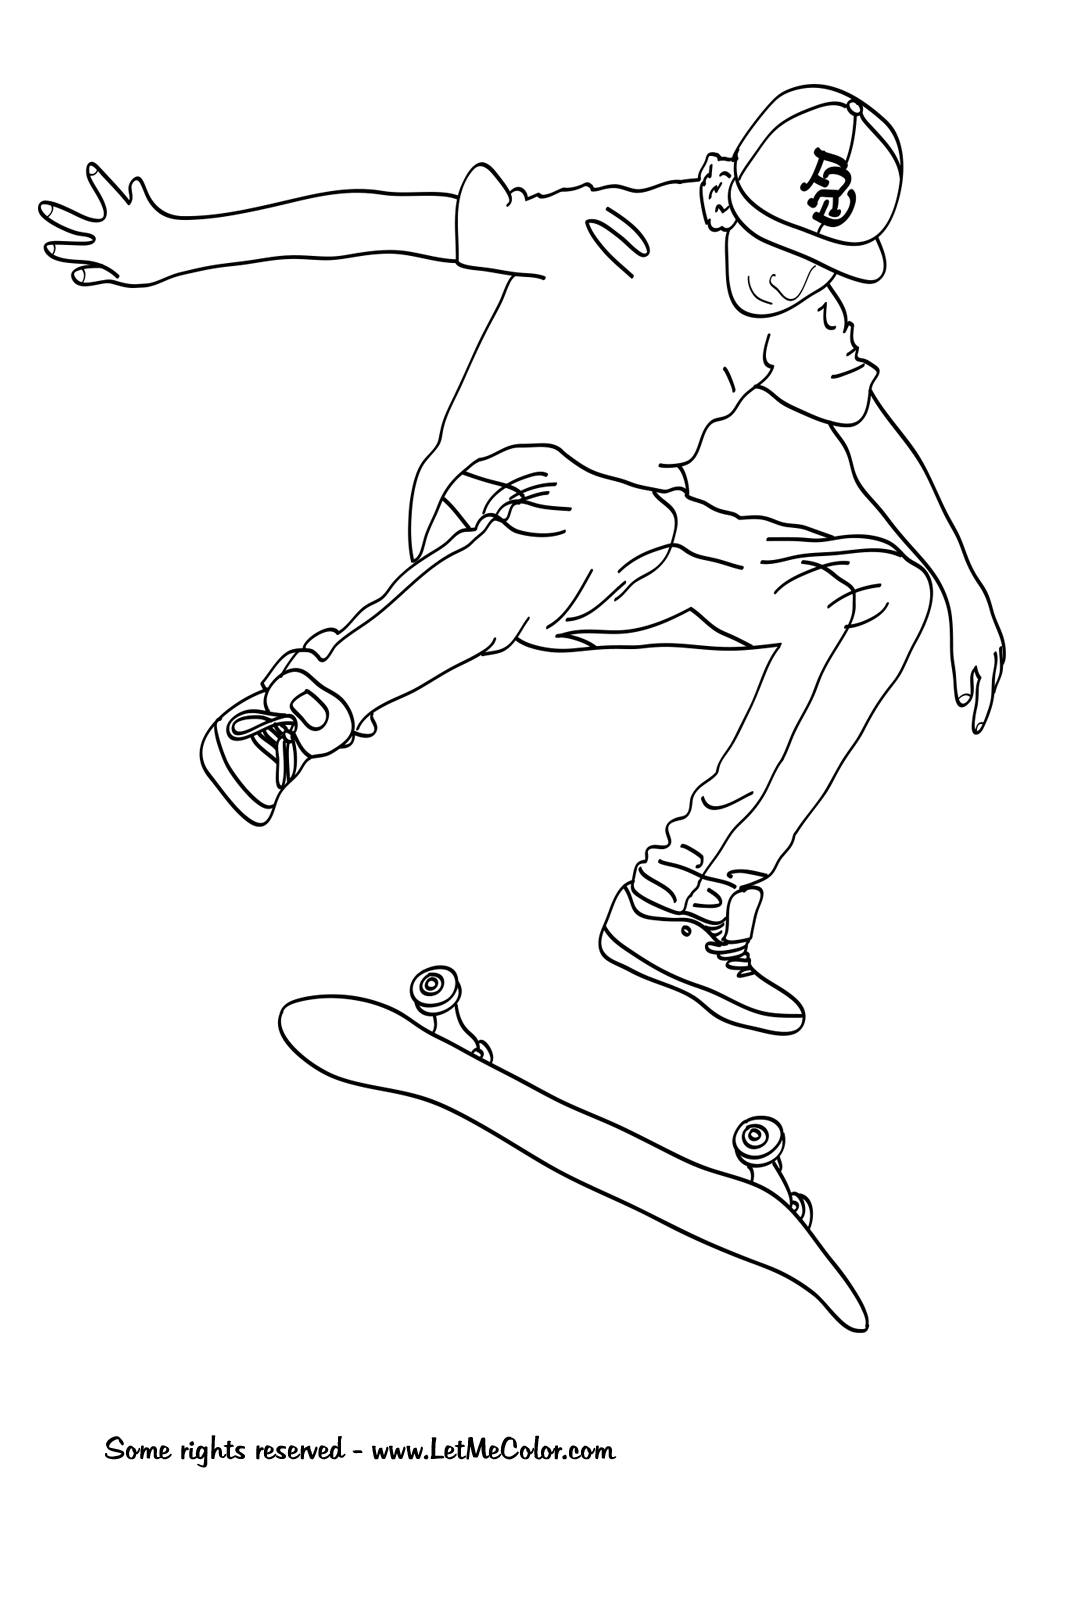 Pin By Carol Bing On Skate Coloring Pages Free Printable Coloring Pages Free Printable Art